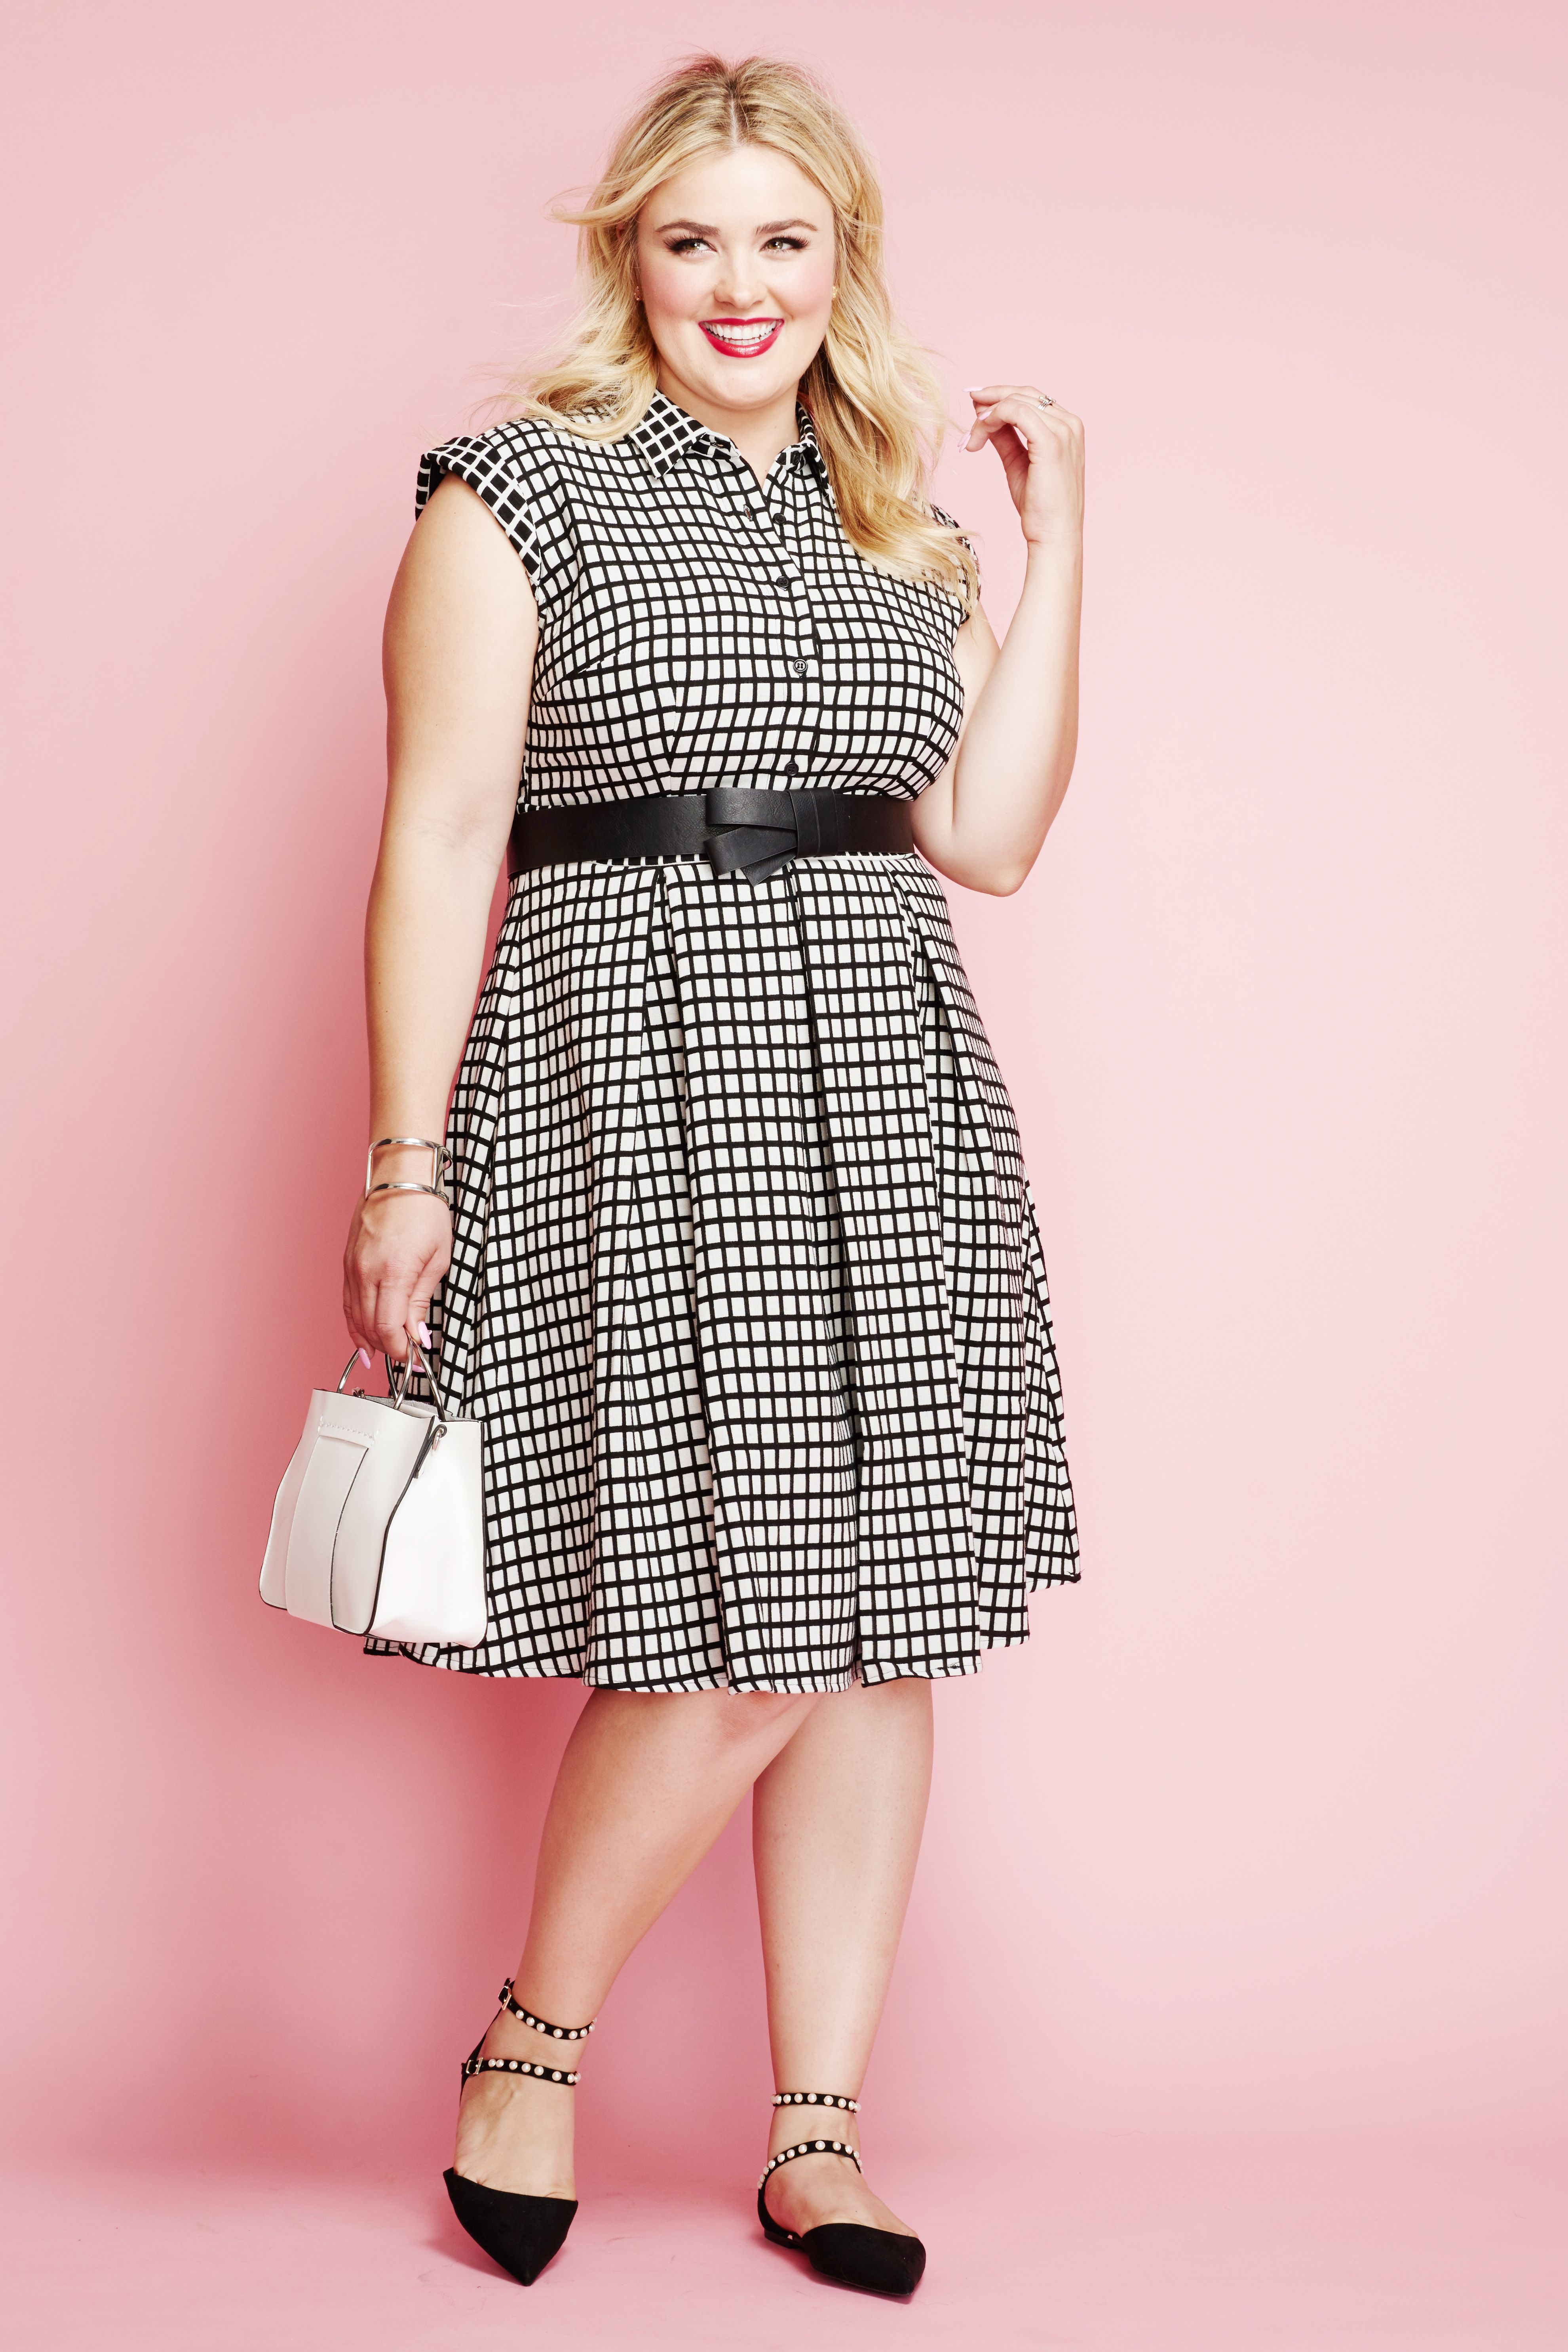 eb71f4f061 Plus Size Fashion OOTD  Classic black and white is always an appropriate  color palette for spring.